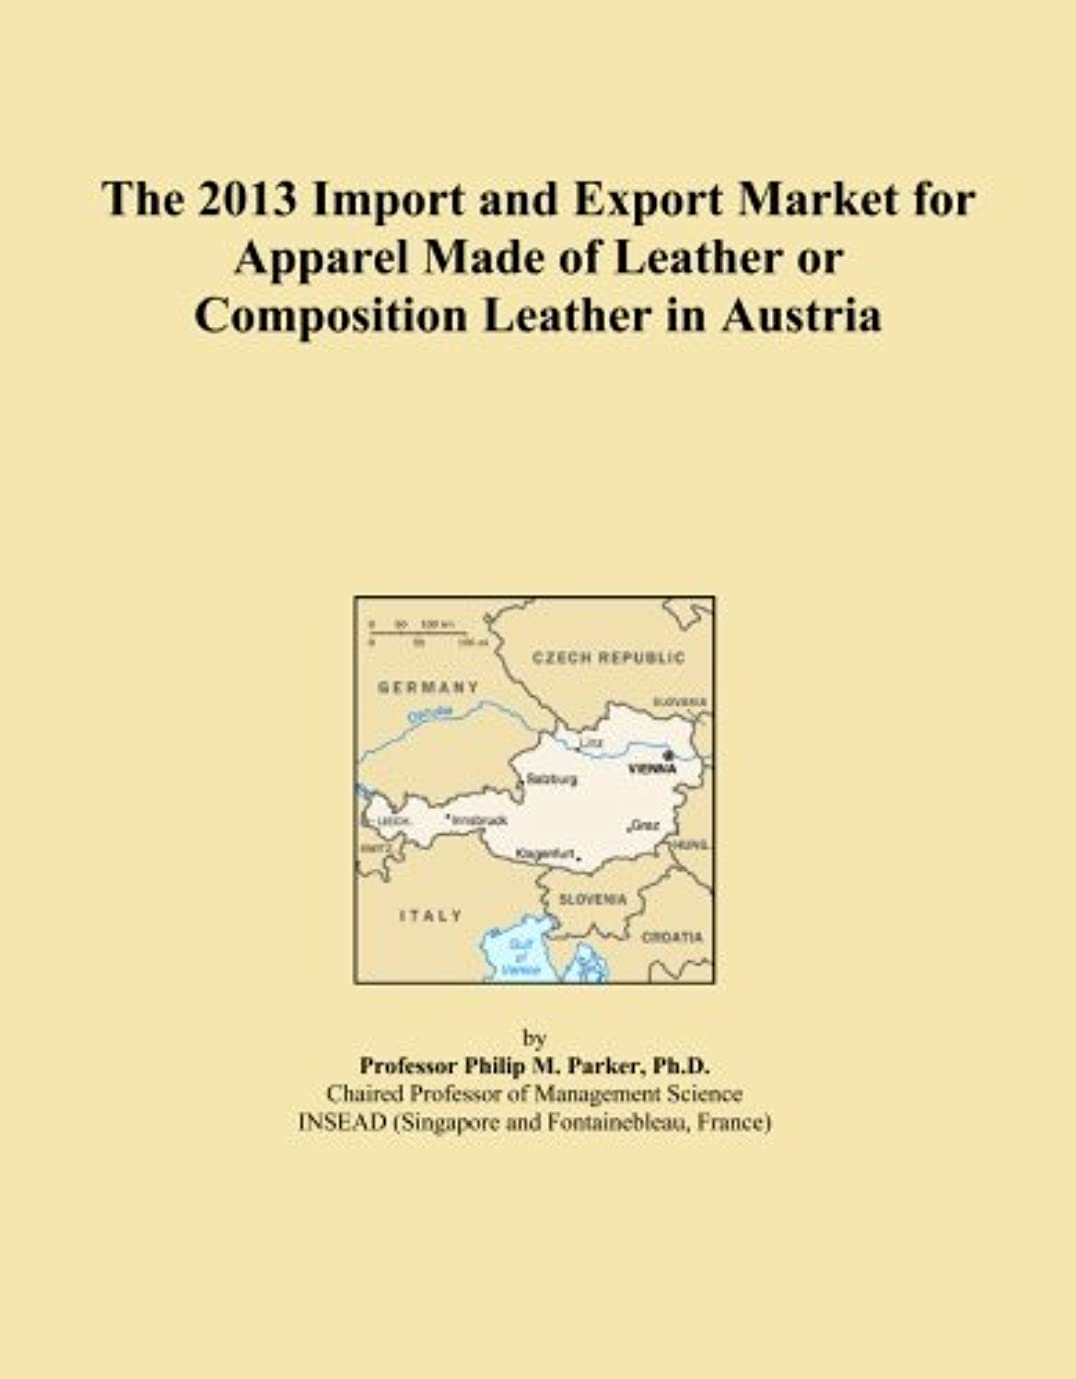 生き返らせる白鳥に付けるThe 2013 Import and Export Market for Apparel Made of Leather or Composition Leather in Austria